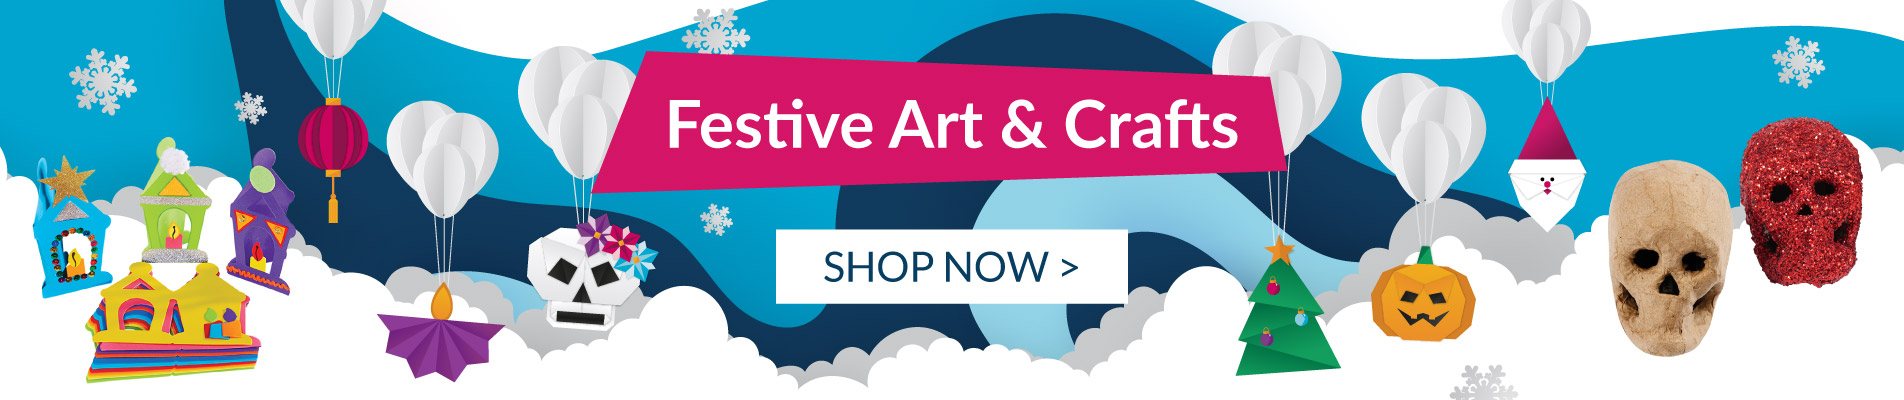 Shop our festive art and crafts products